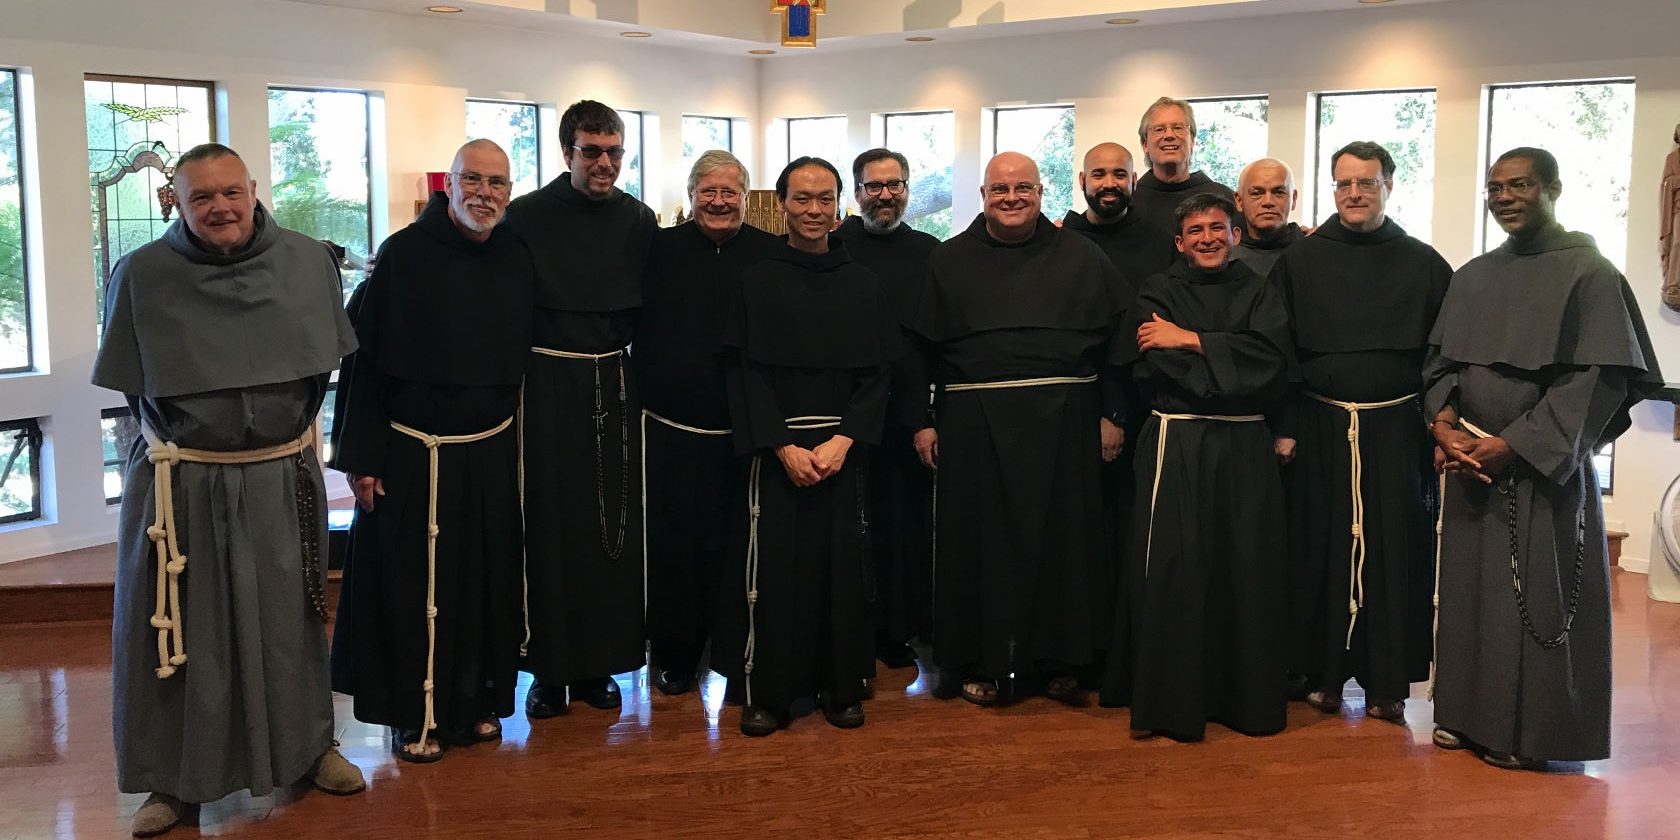 Saint Joseph of Cupertino Province Newly Professed